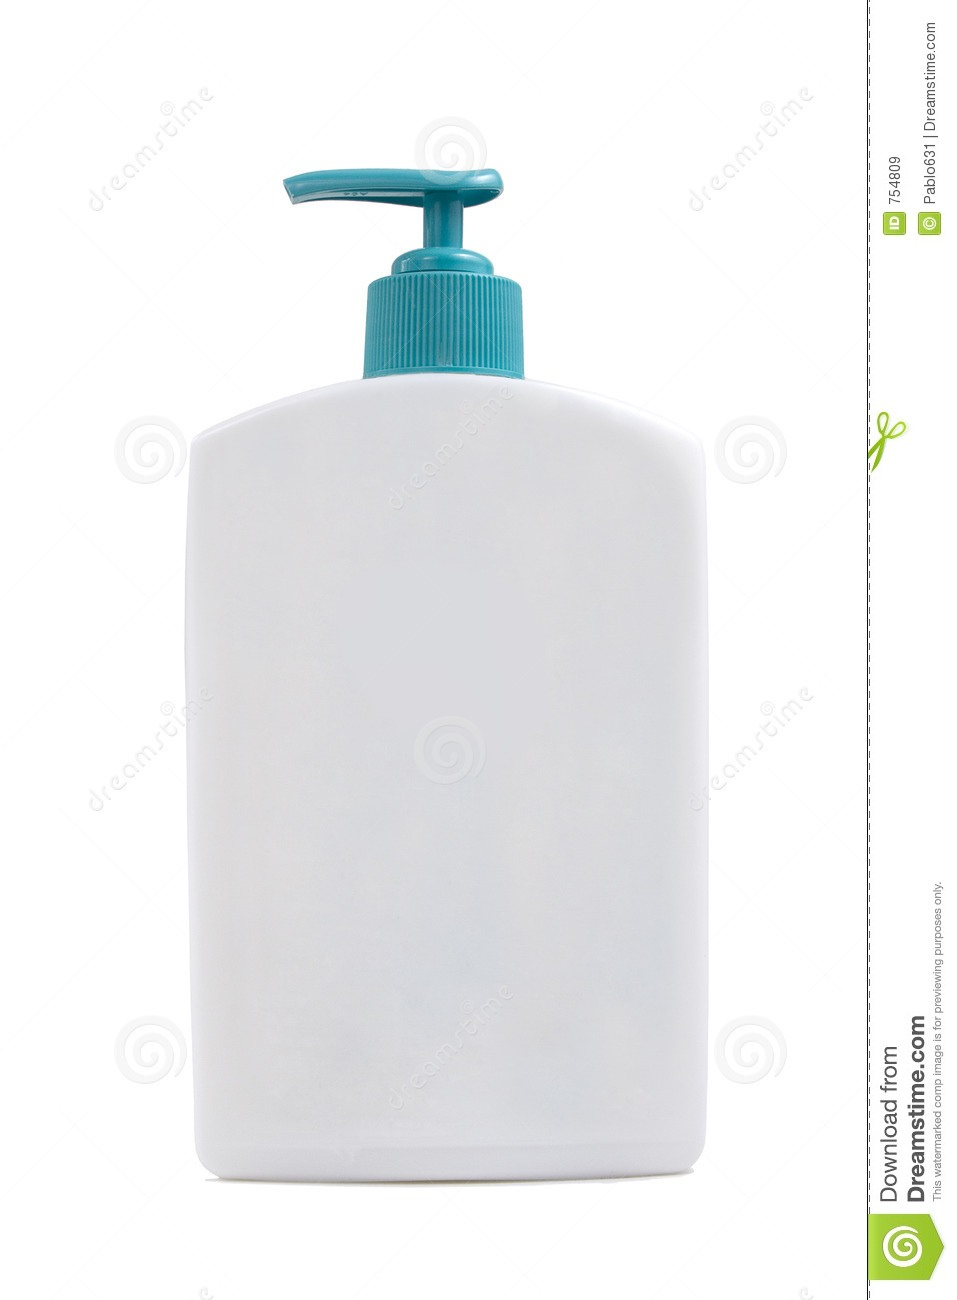 Get a lotion bottle any